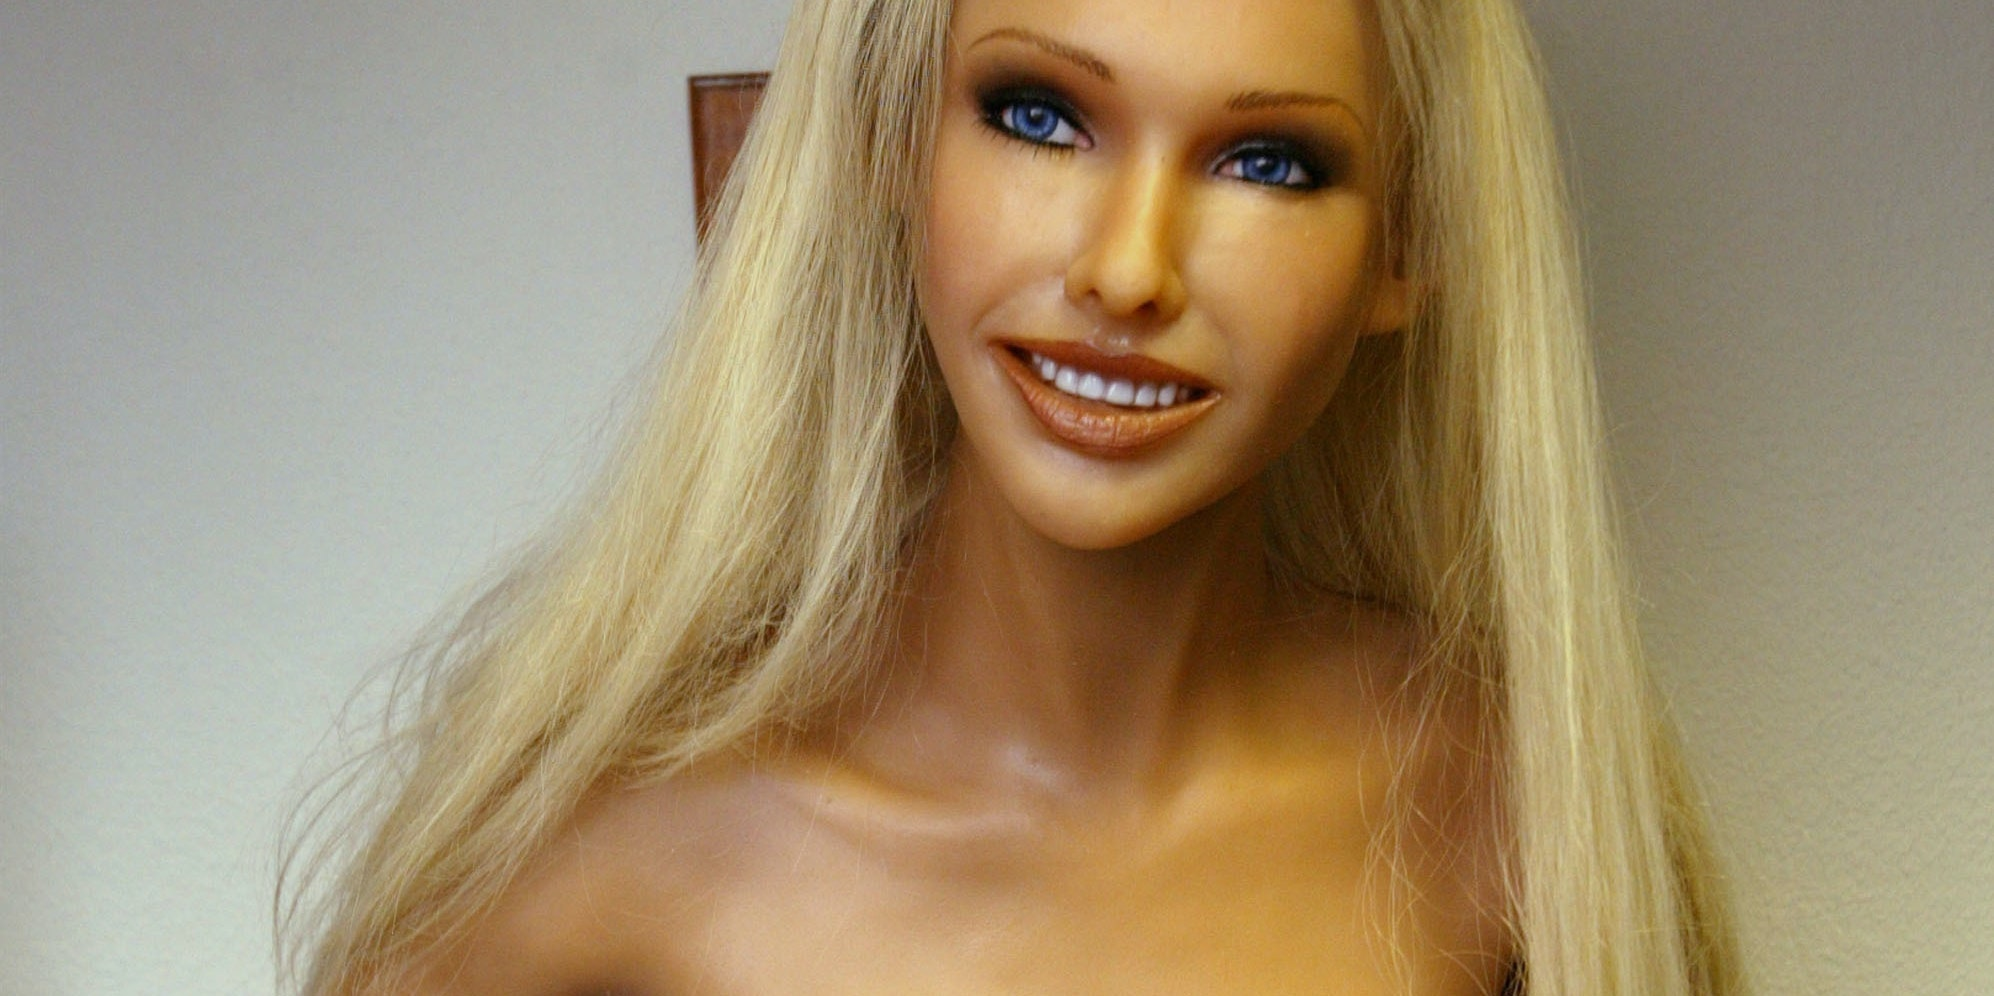 https://fsmedia.imgix.net/f0/20/15/50/475d/4edb/9801/9687e1a0f94e/a-finished-silicone-realdoll-sex-doll-stands-topless-at-the-abyss-creations-factory-on-february-5-2.jpeg?rect=0%2C599%2C1994%2C996&auto=format%2Ccompress&w=1200&q=70